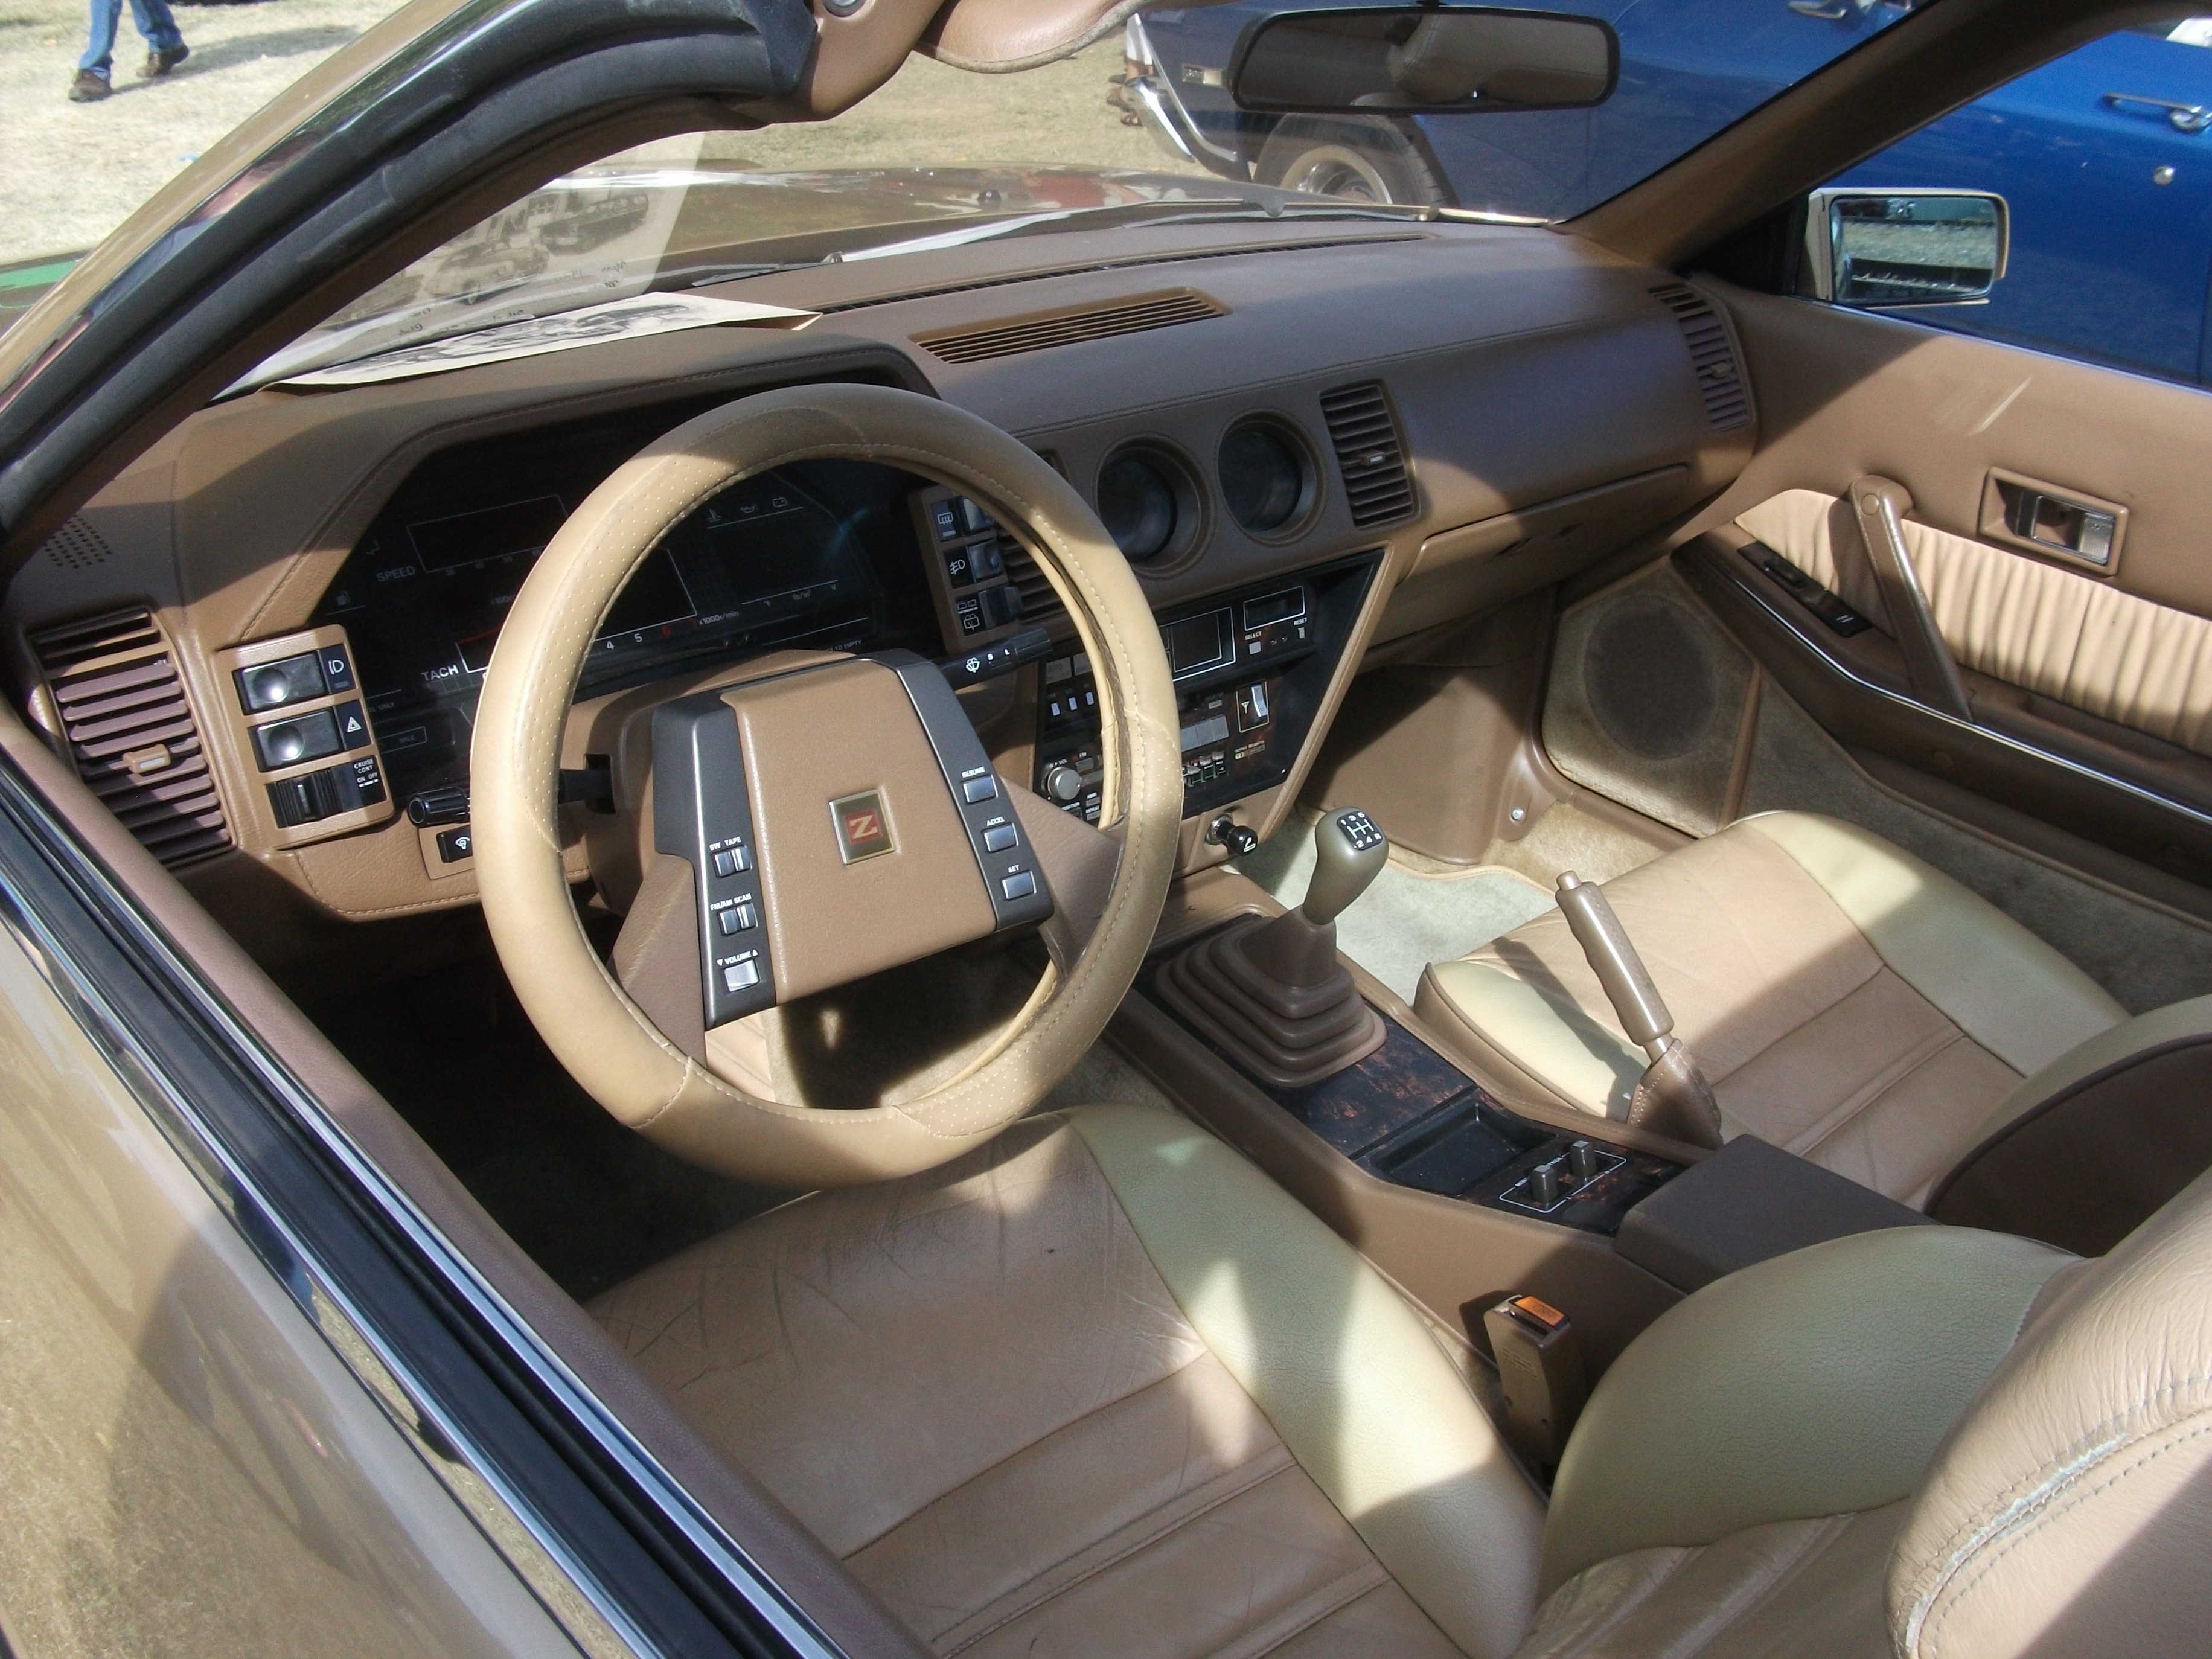 File1985 Nissan 300ZX interior 6281690268jpg  Wikimedia Commons